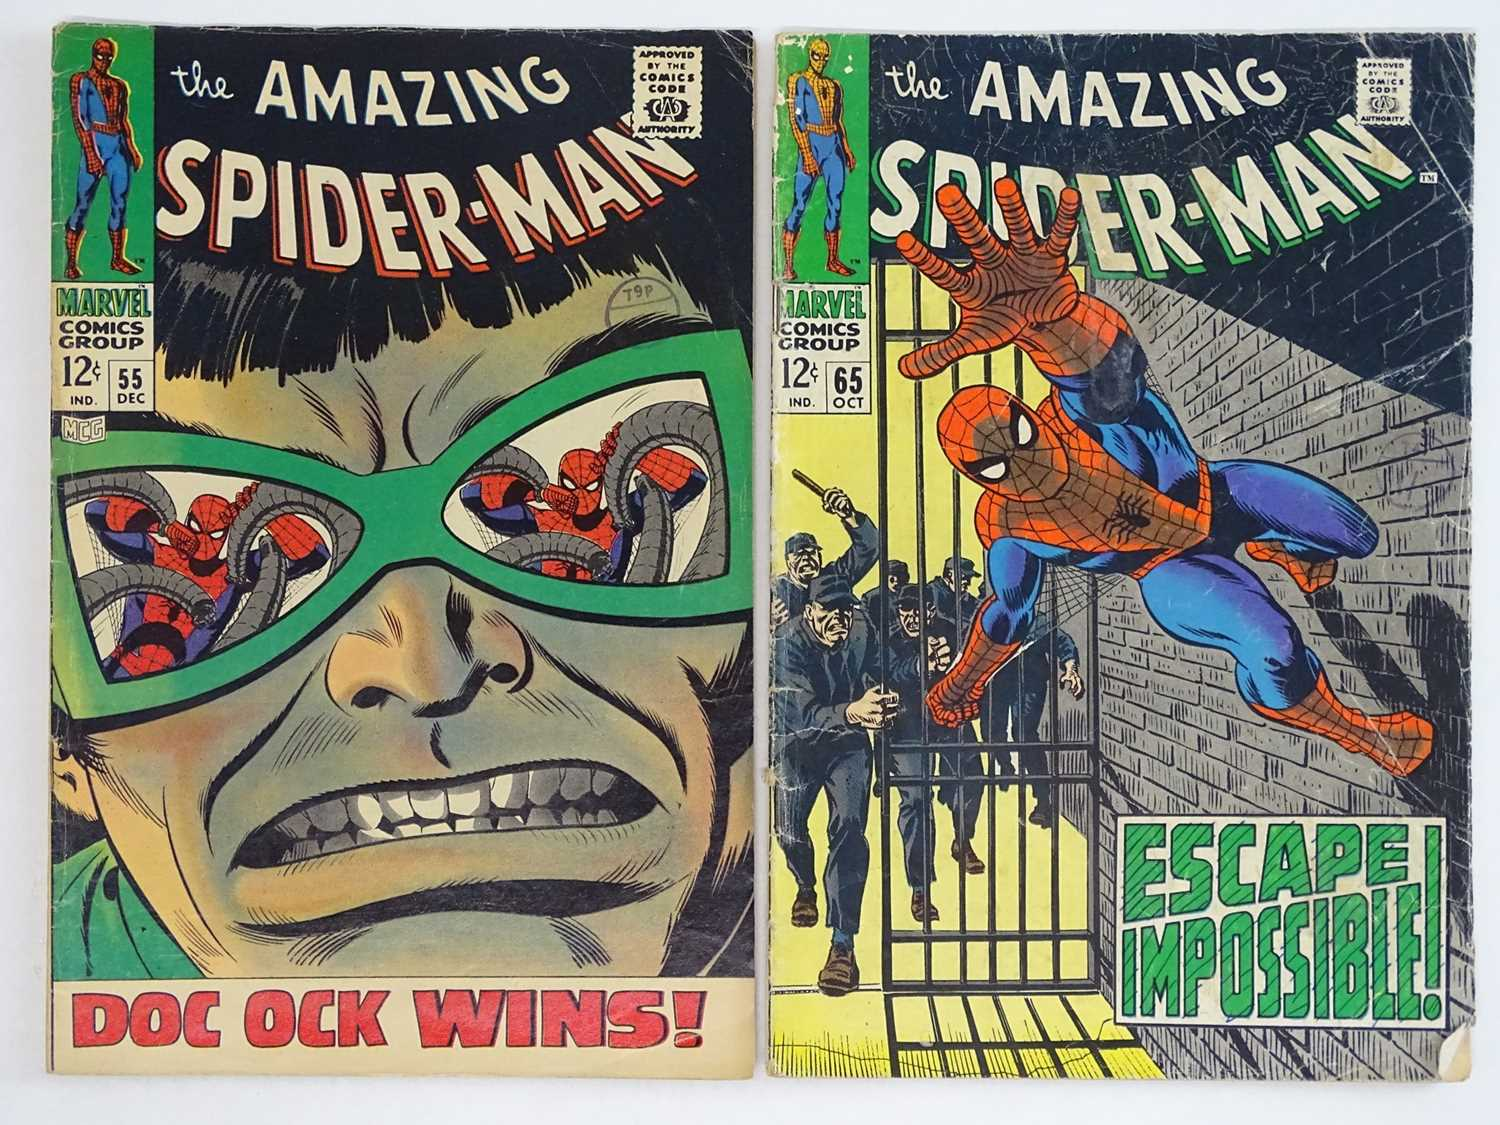 AMAZING SPIDER-MAN #55 & 65 - (2 in Lot) - (1967/68 - MARVEL - UK Cover Price) - Includes Doctor